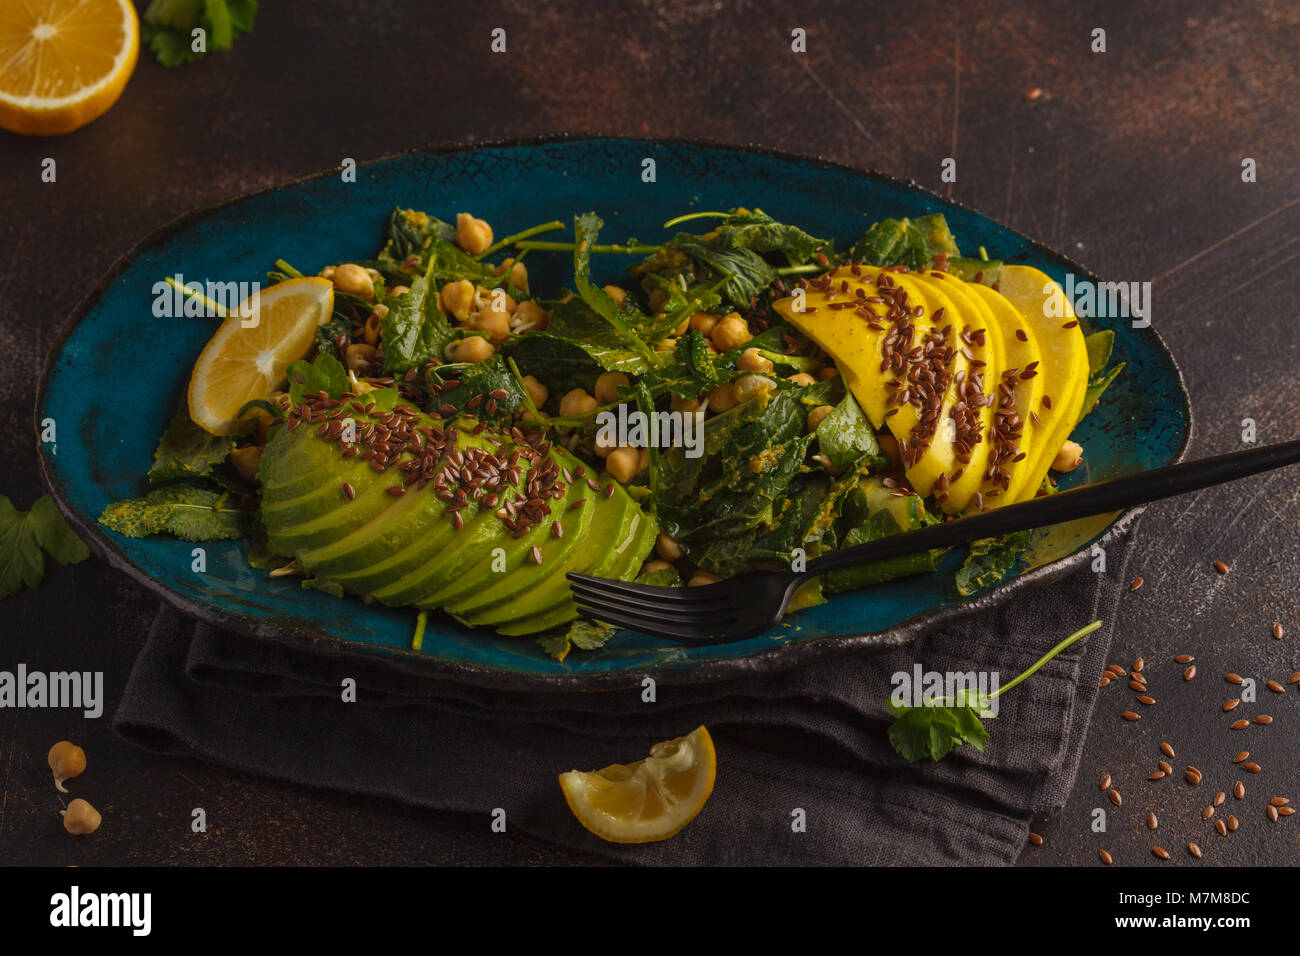 Healthy vegan avocado, chickpeas, kale salad in a vintage blue plate on a dark rusty background. Vegan food concept. - Stock Image